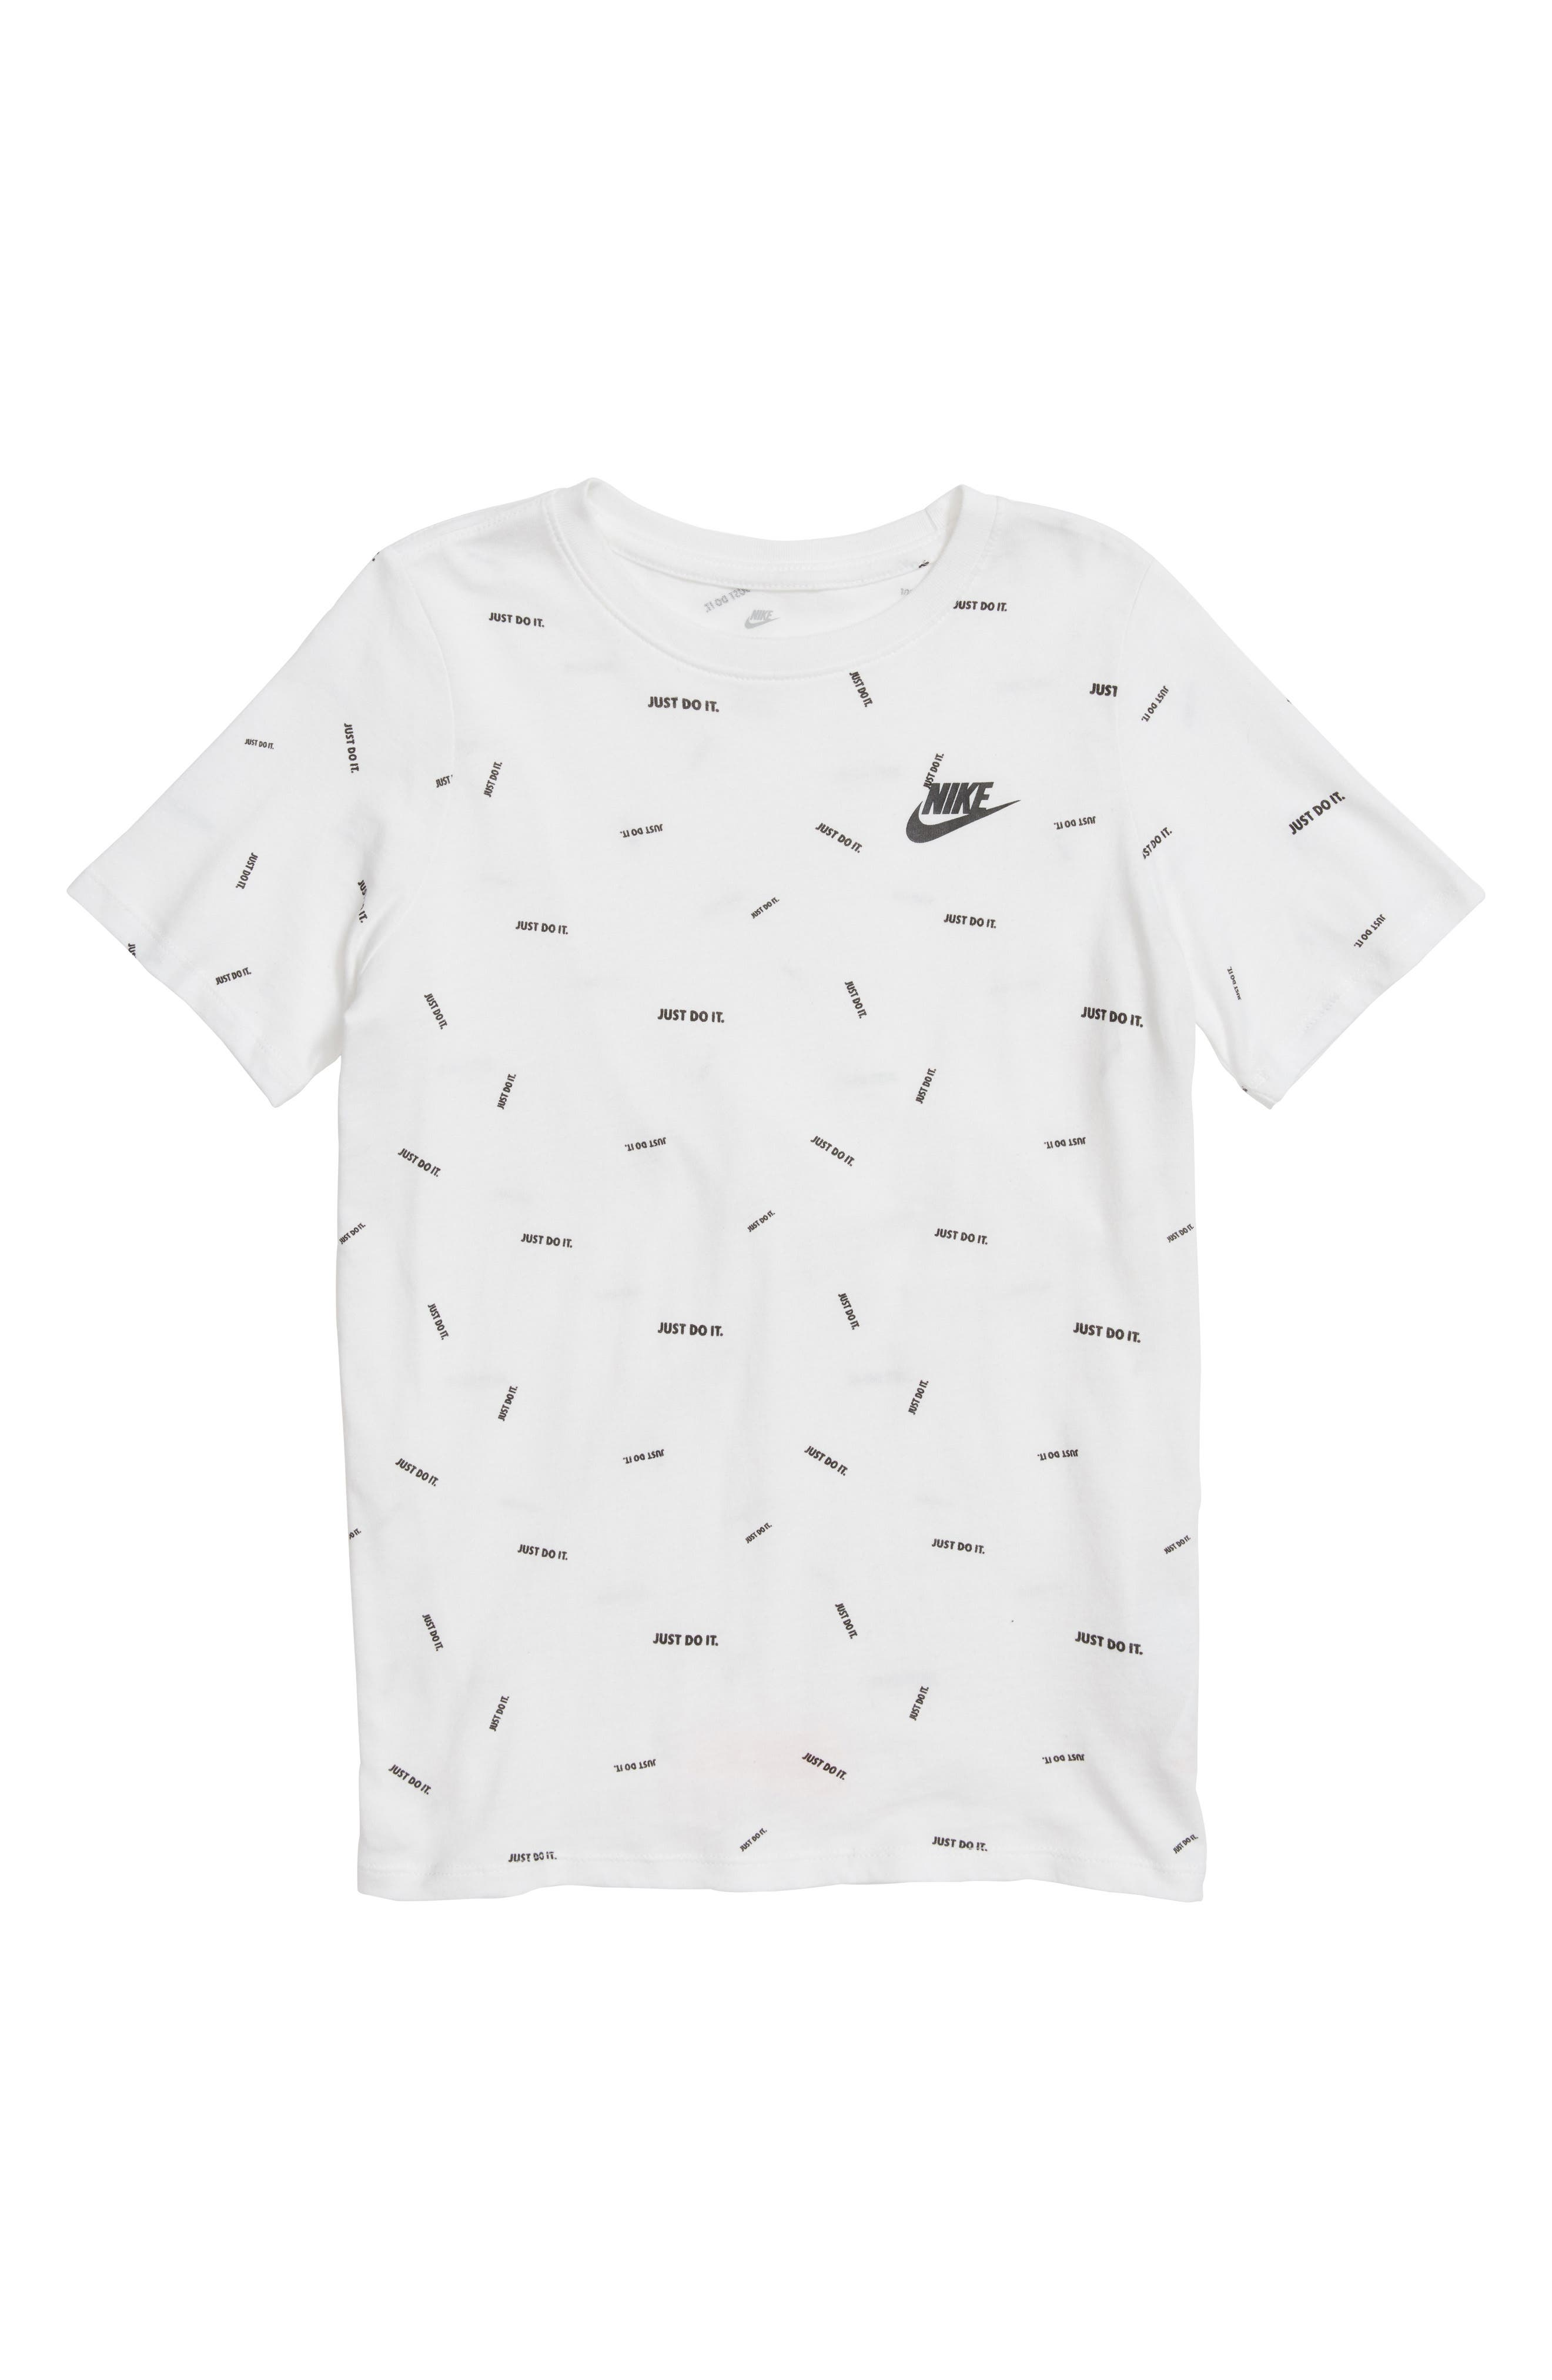 Just Do It Confetti Graphic T-Shirt,                         Main,                         color, White/ Black